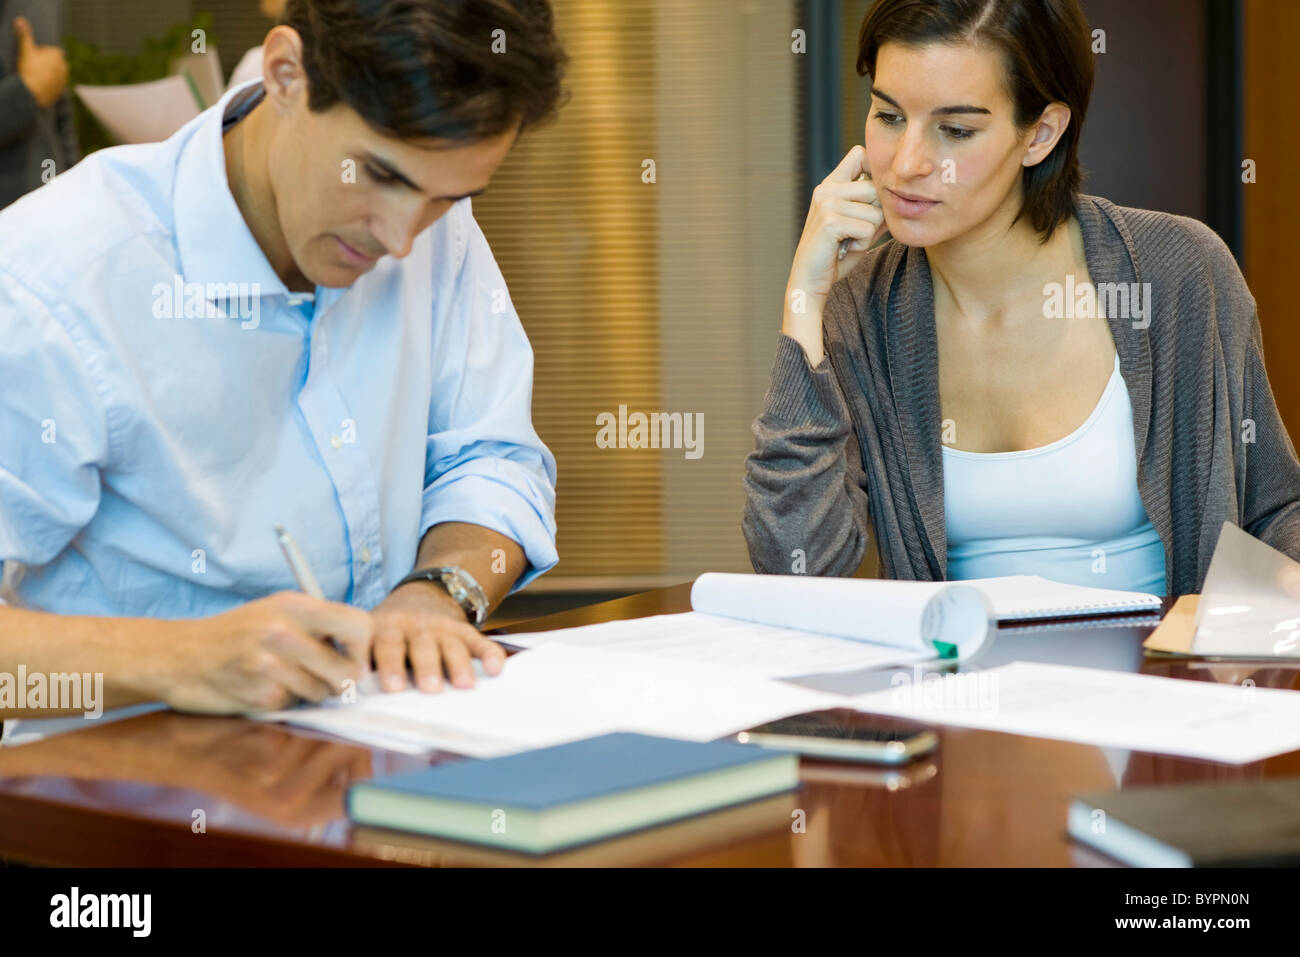 Executives doing paperwork together - Stock Image